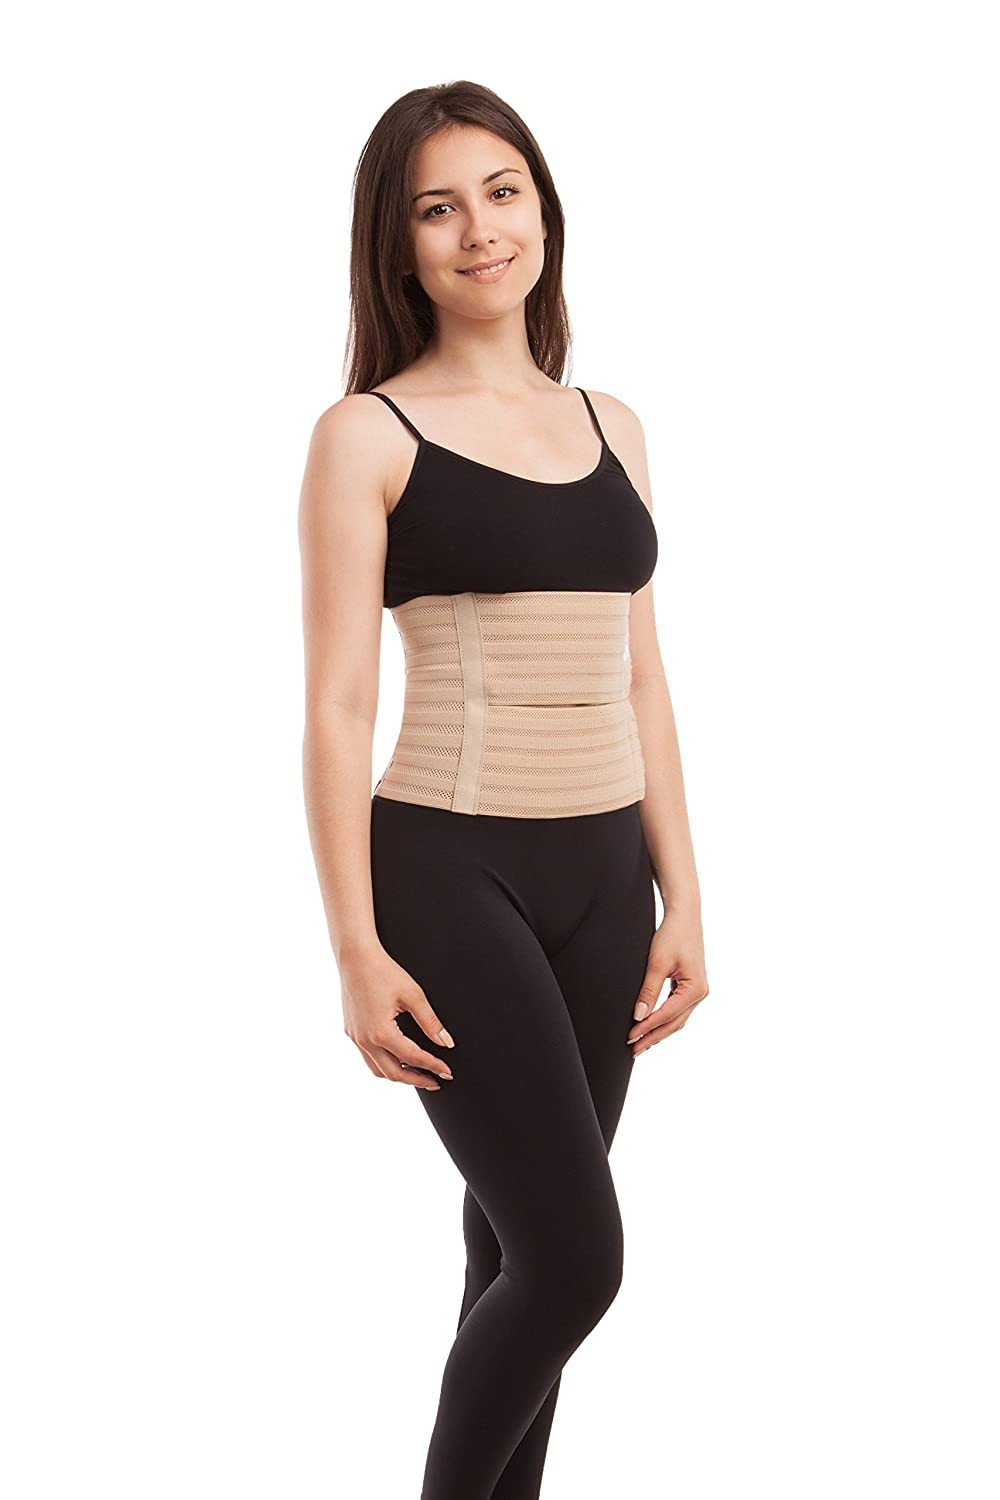 Amazon.com: ITA-MED Womens Breathable 9 Inch Wide Post-Partum Abdominal Support Binder, Beige, X-Large, 1 Pound: Health & Personal Care